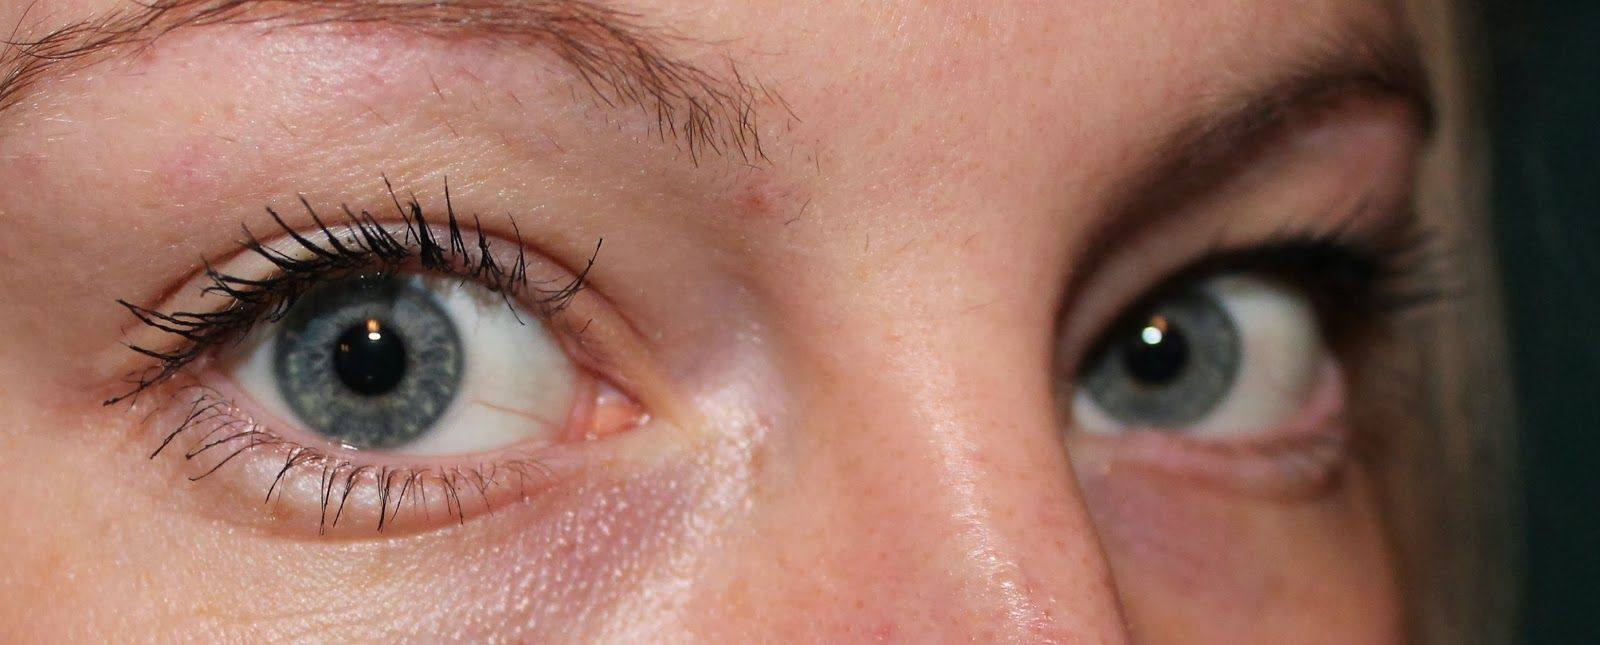 e5882d706bc Rimmel Scandaleyes Retro Glam Mascara Review - Product in use - Eye Swatch